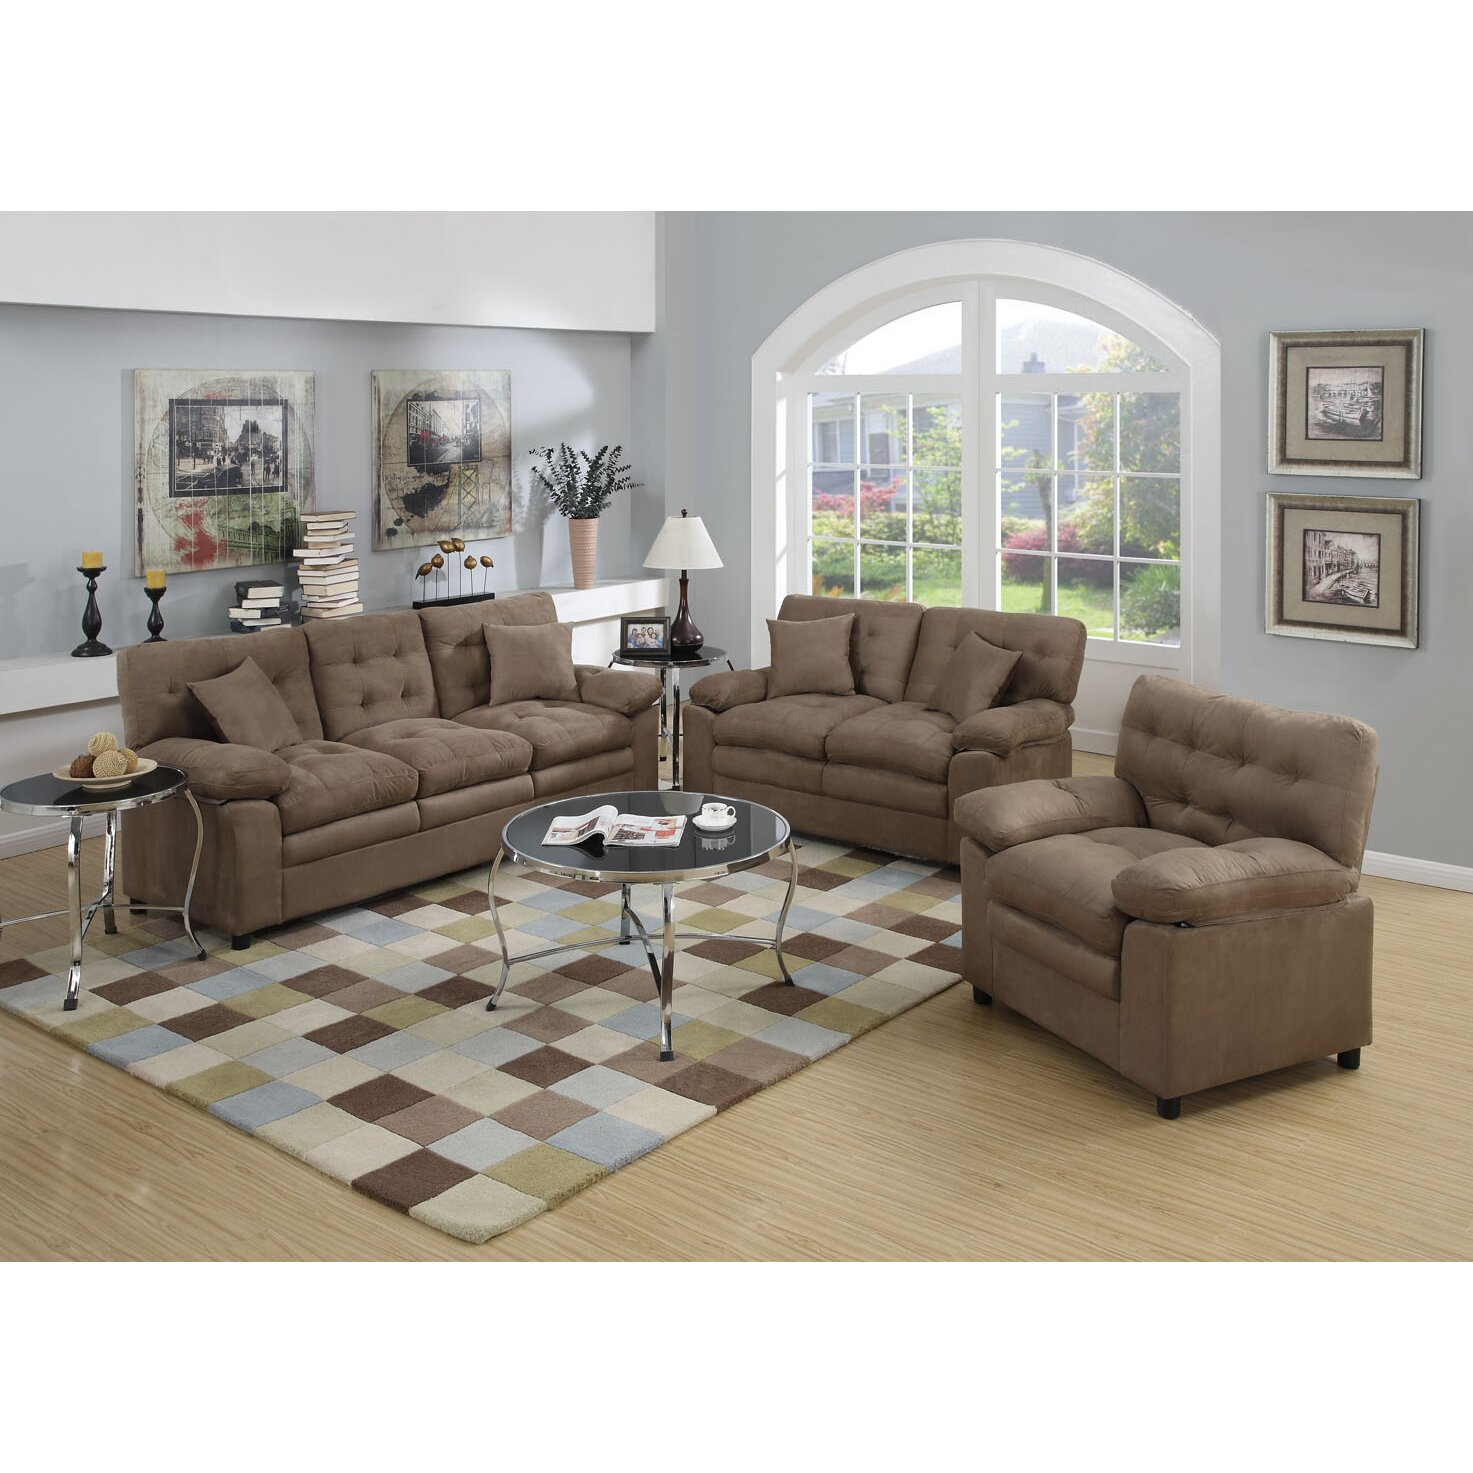 Poundex bobkona colona 3 piece living room set reviews for Seating furniture living room